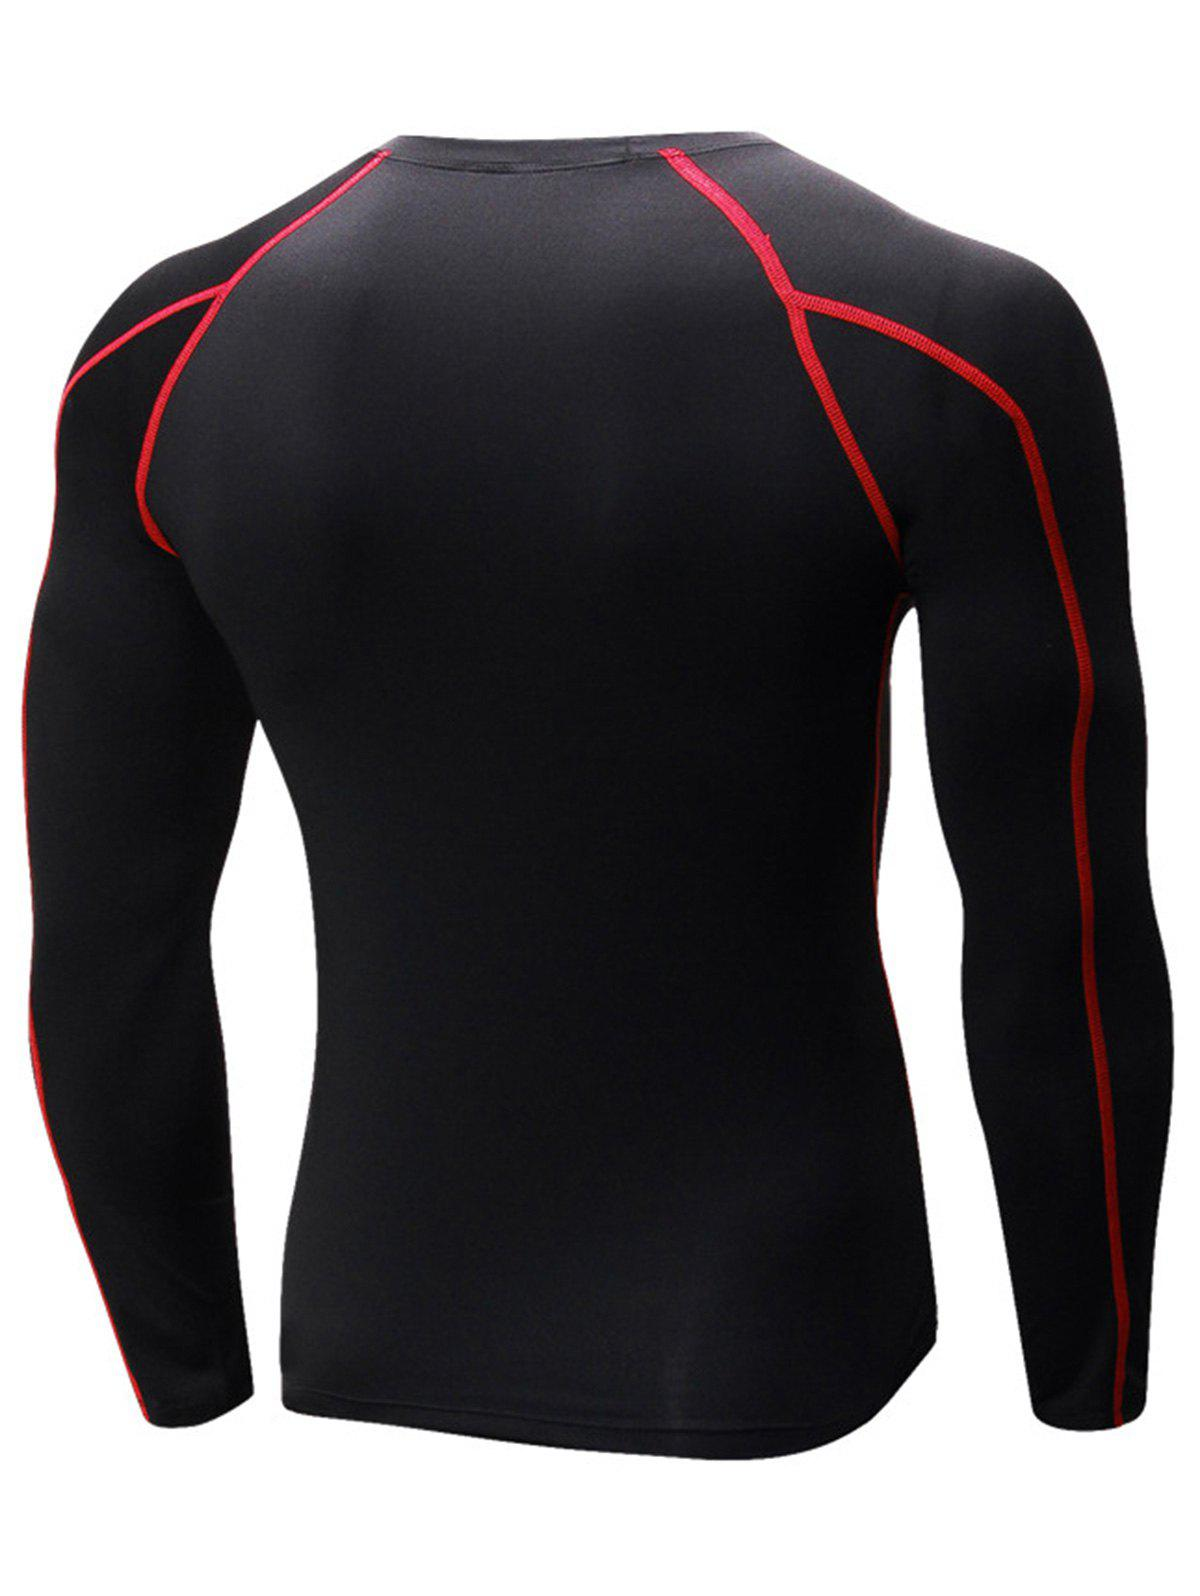 Stretchy Quick Dry Suture Long Sleeve T-shirt - BLACK/RED XL